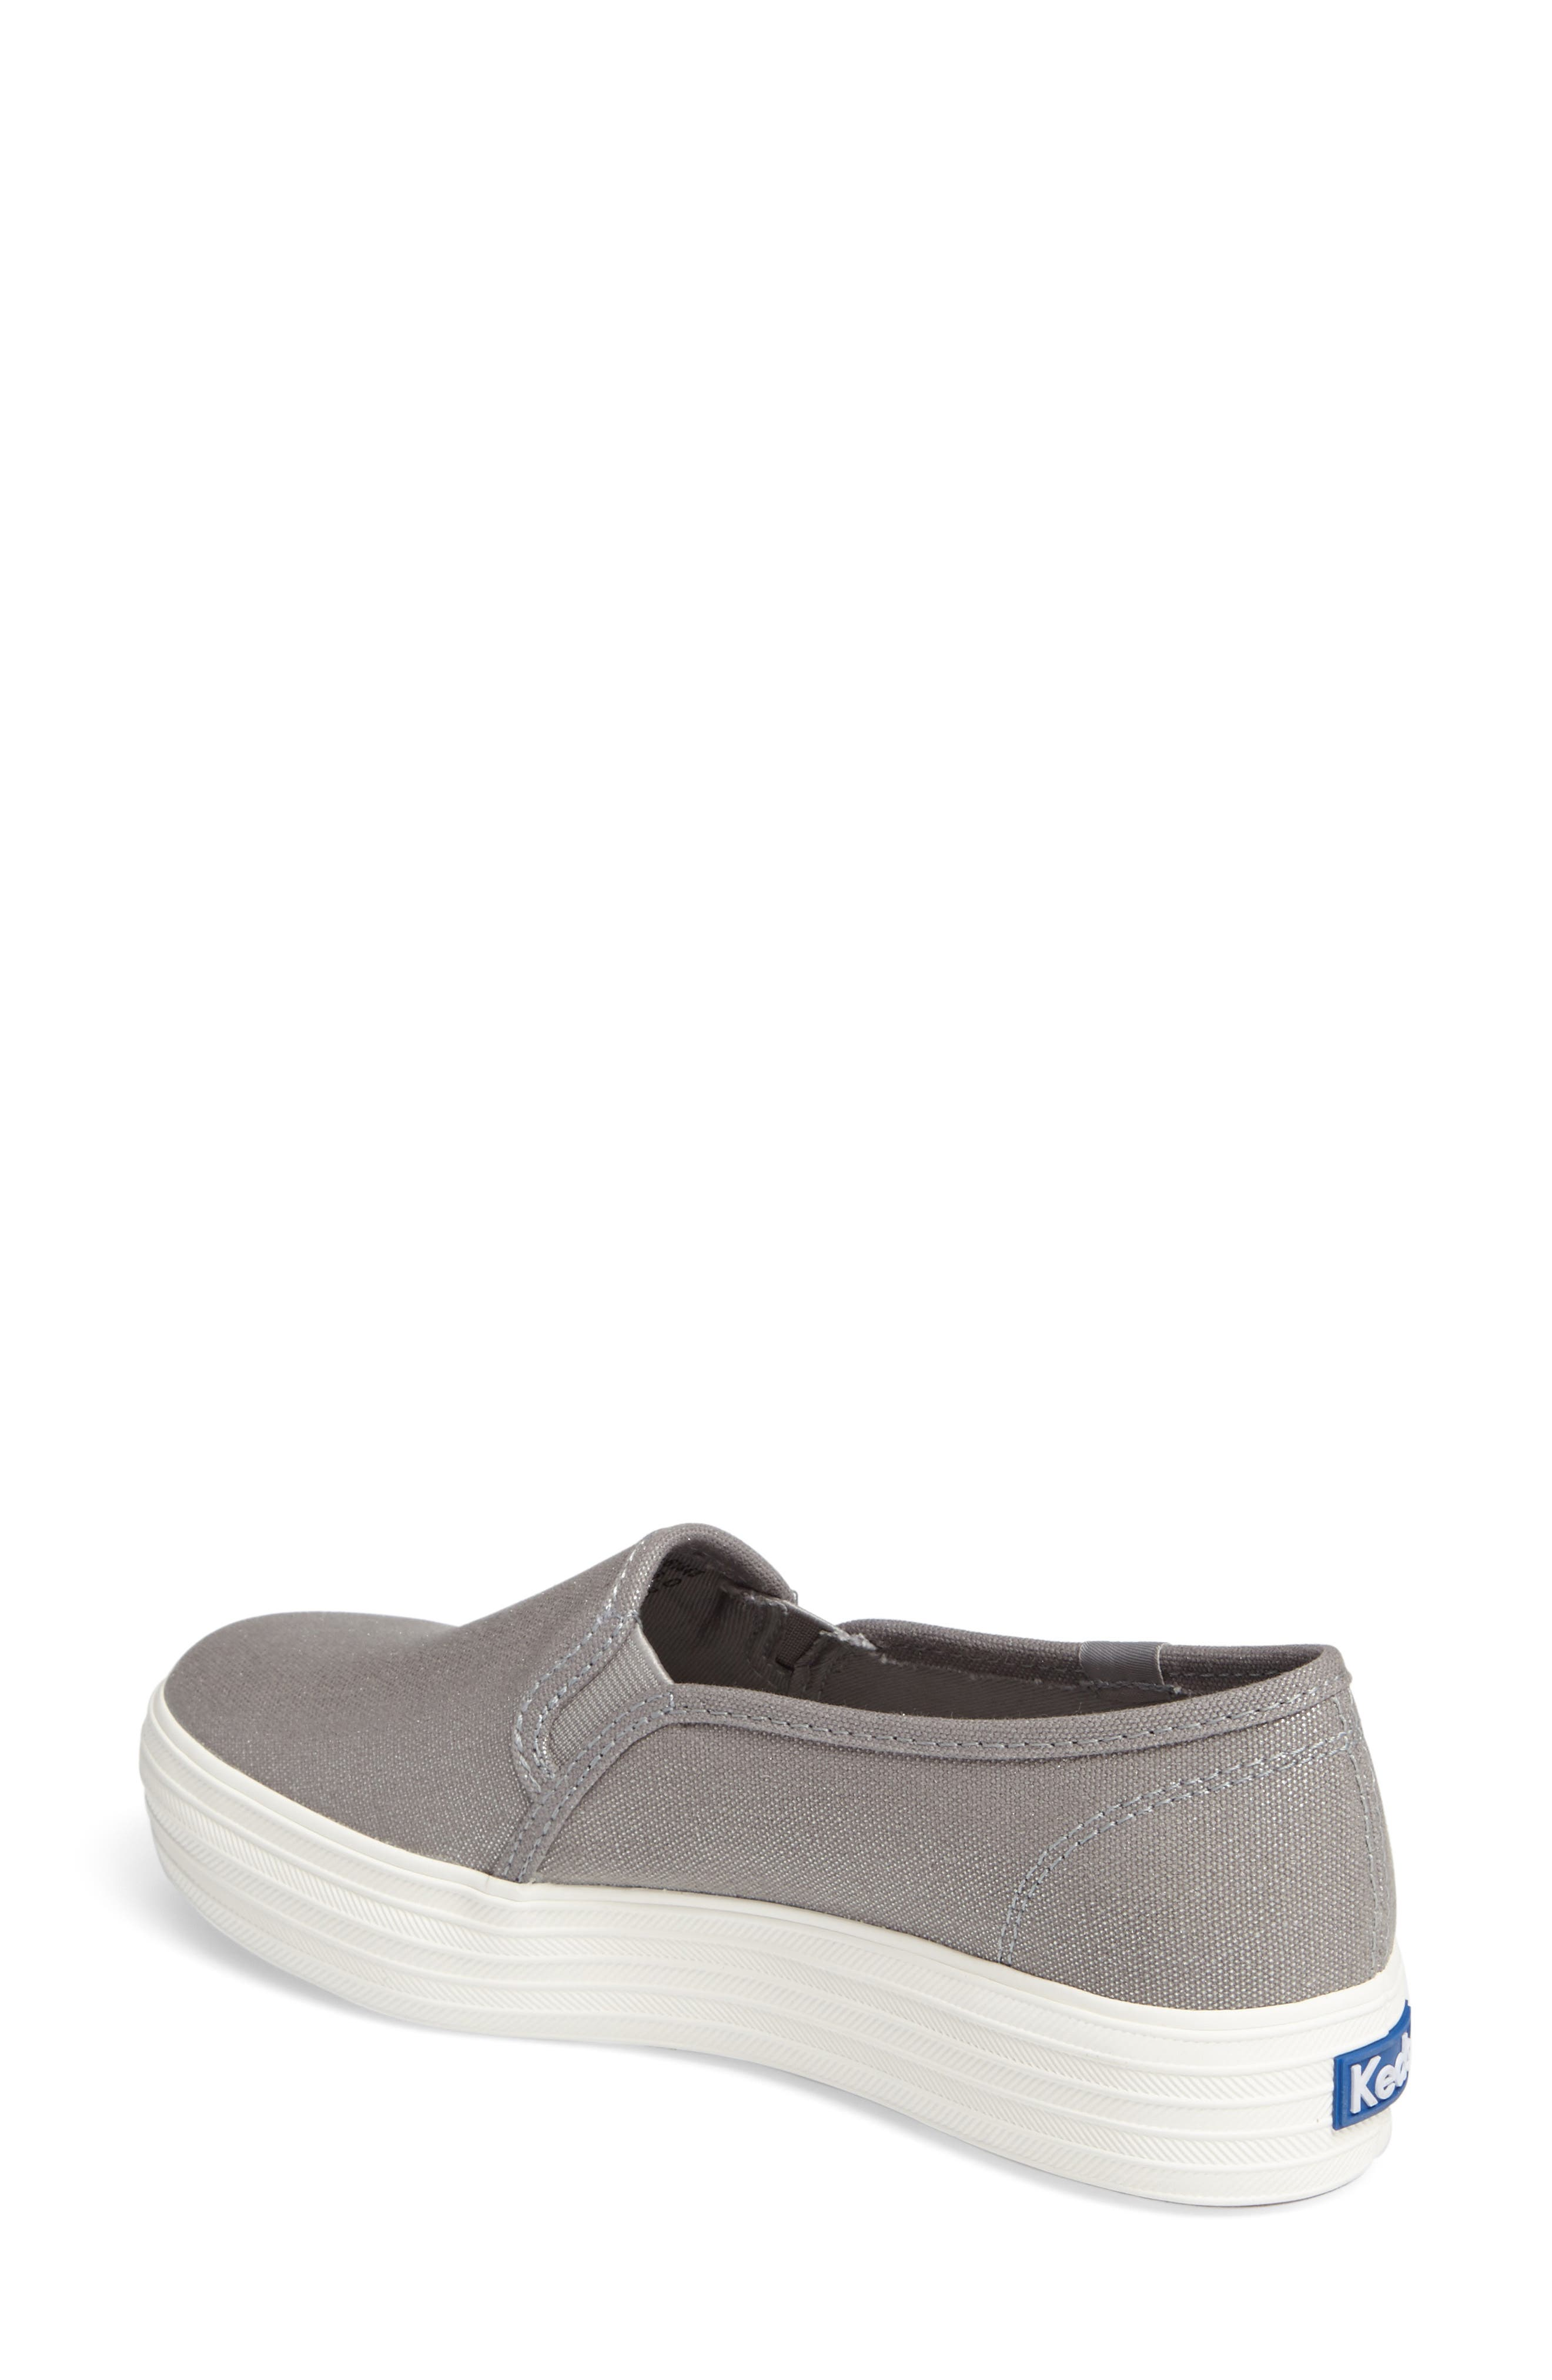 Triple Decker Slip-On Platform Sneaker,                             Alternate thumbnail 2, color,                             Silver